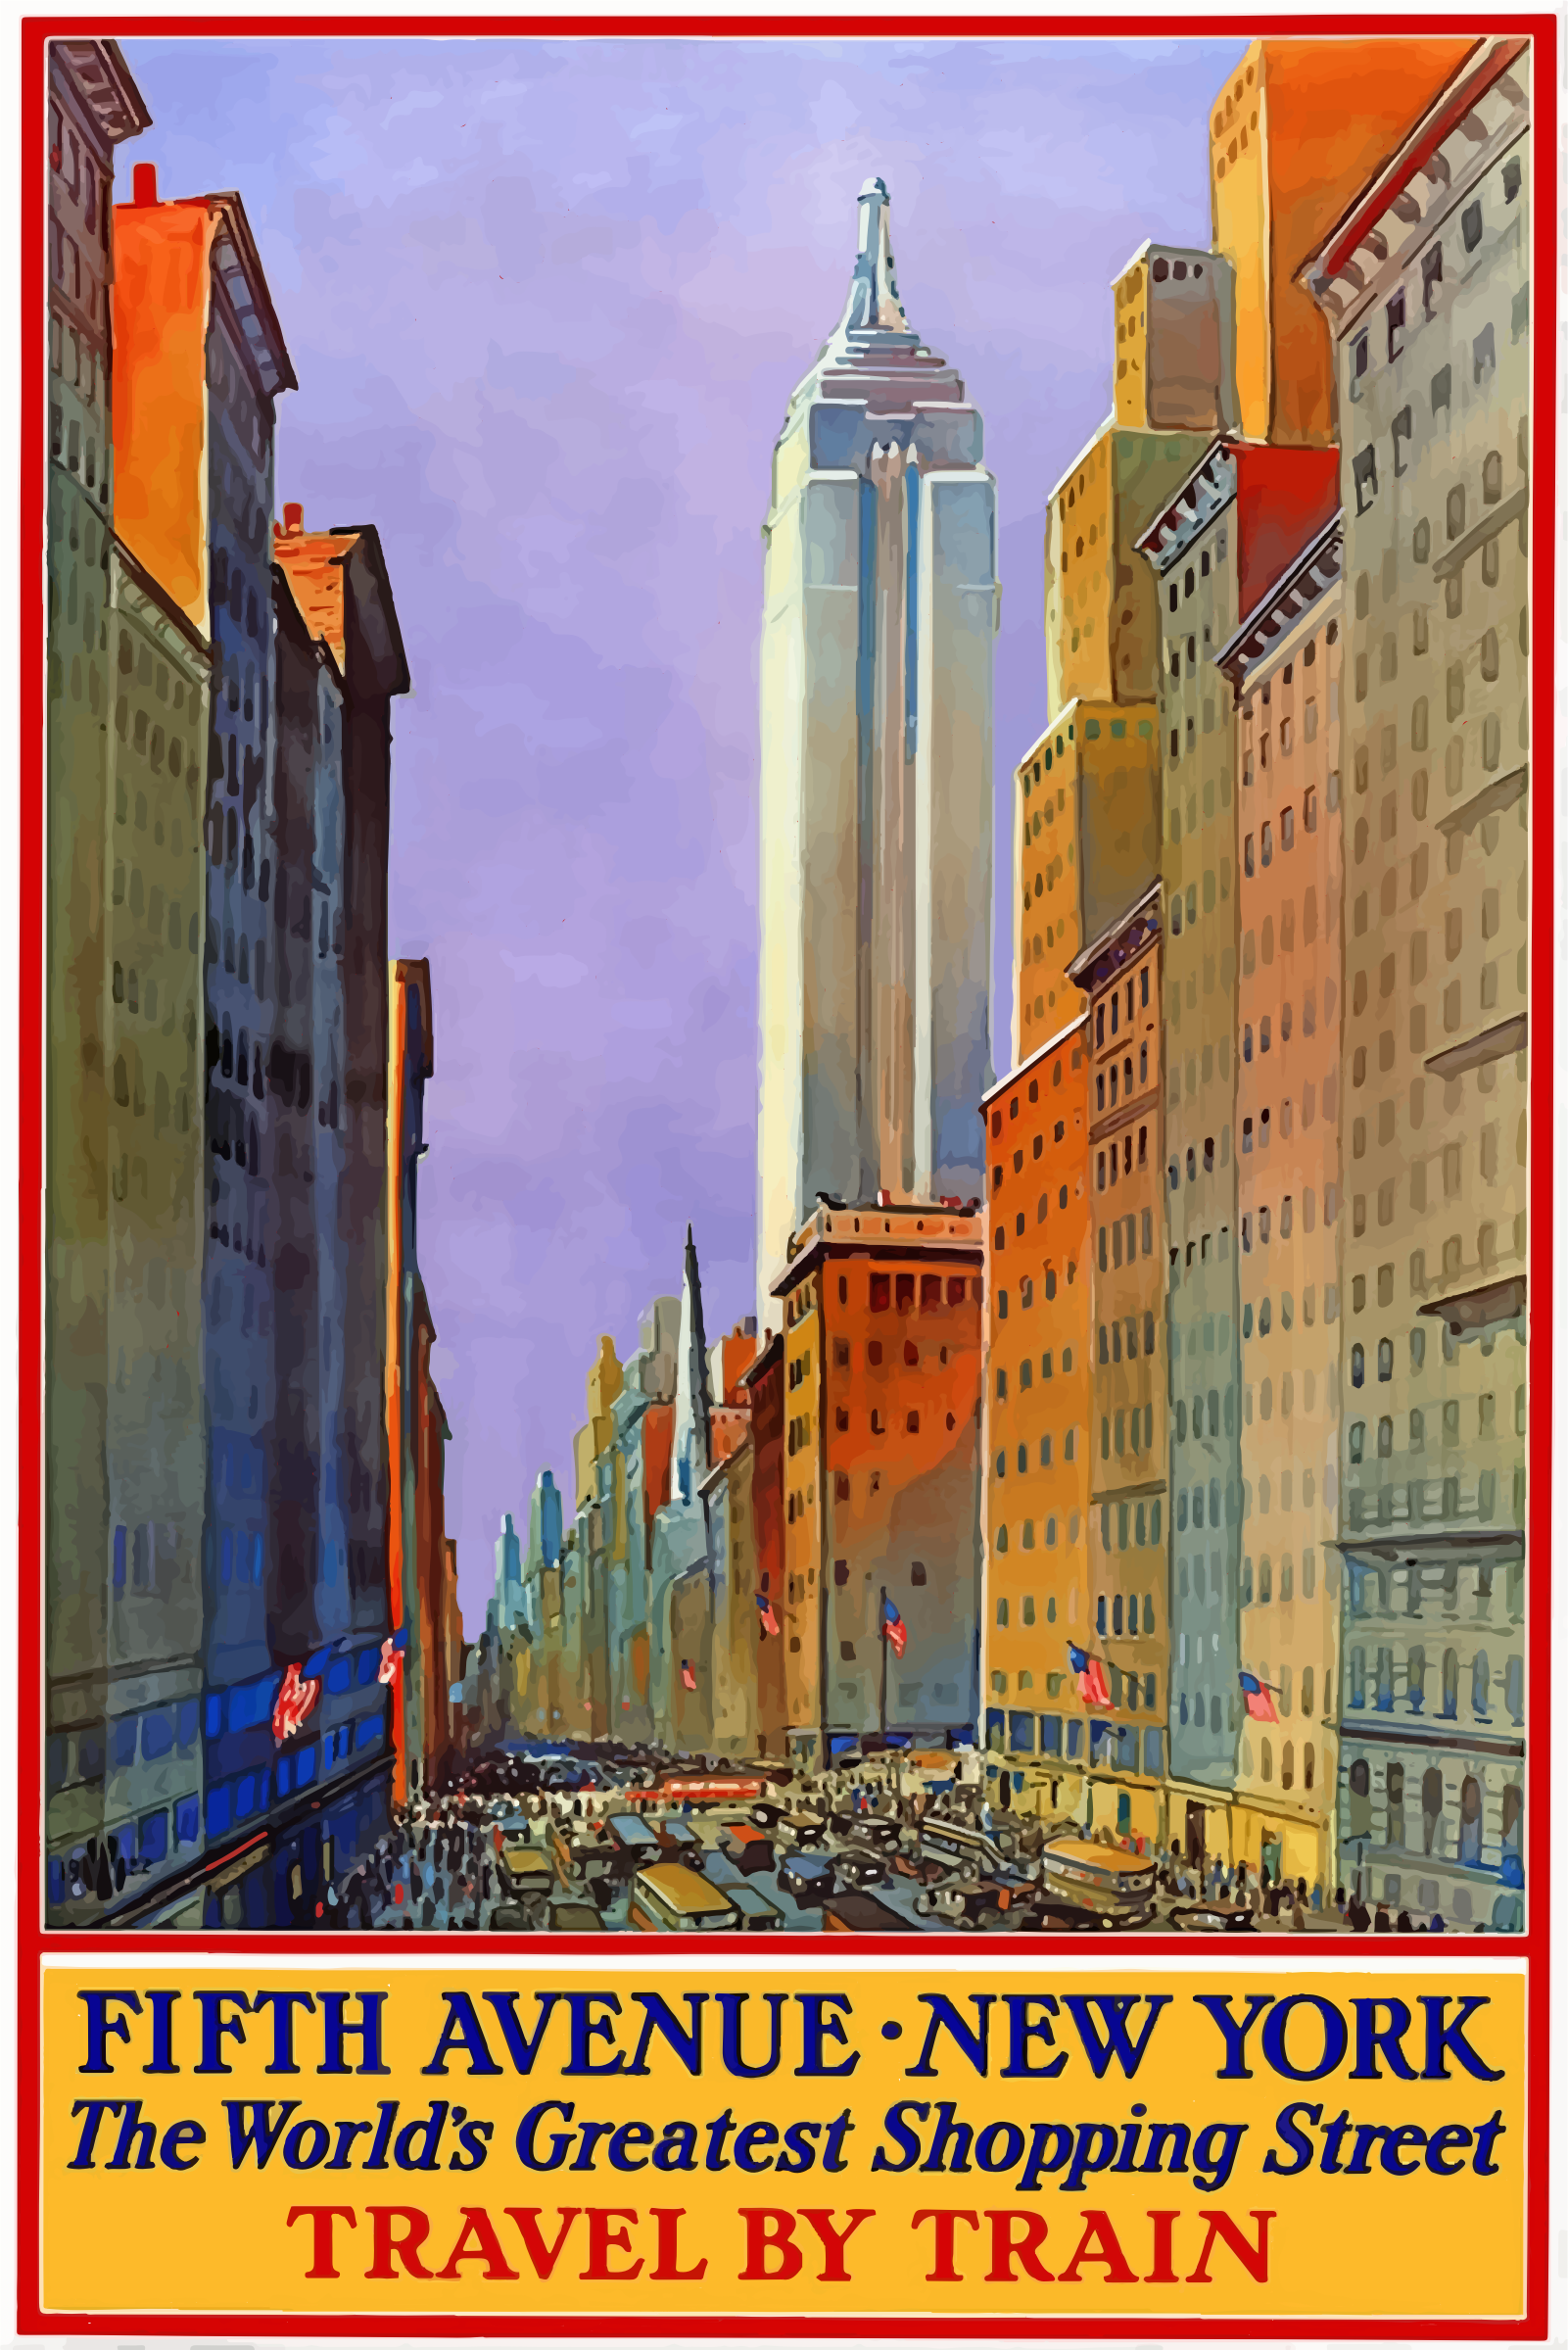 clipart vintage travel poster 5th avenue new york. Black Bedroom Furniture Sets. Home Design Ideas